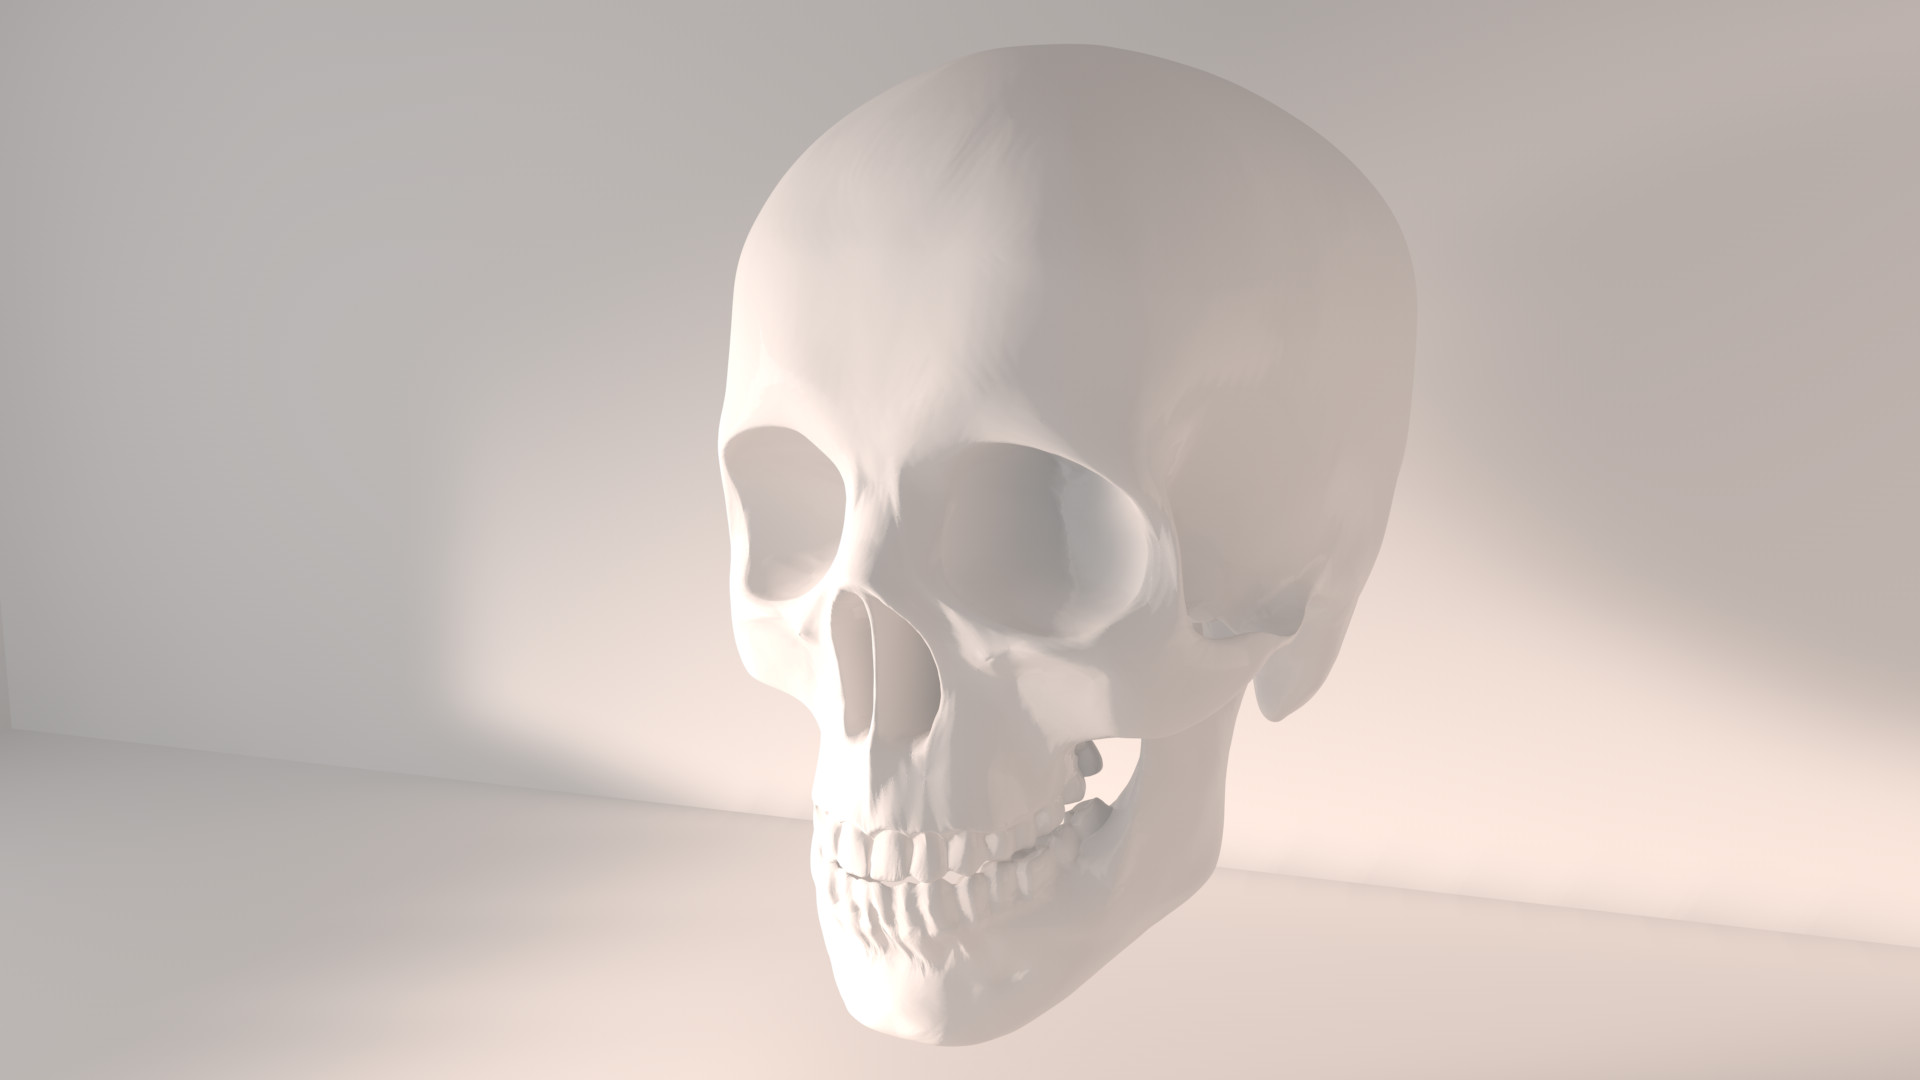 Cinema 4D -- Skull by SMOKEYoriginalHD on DeviantArt